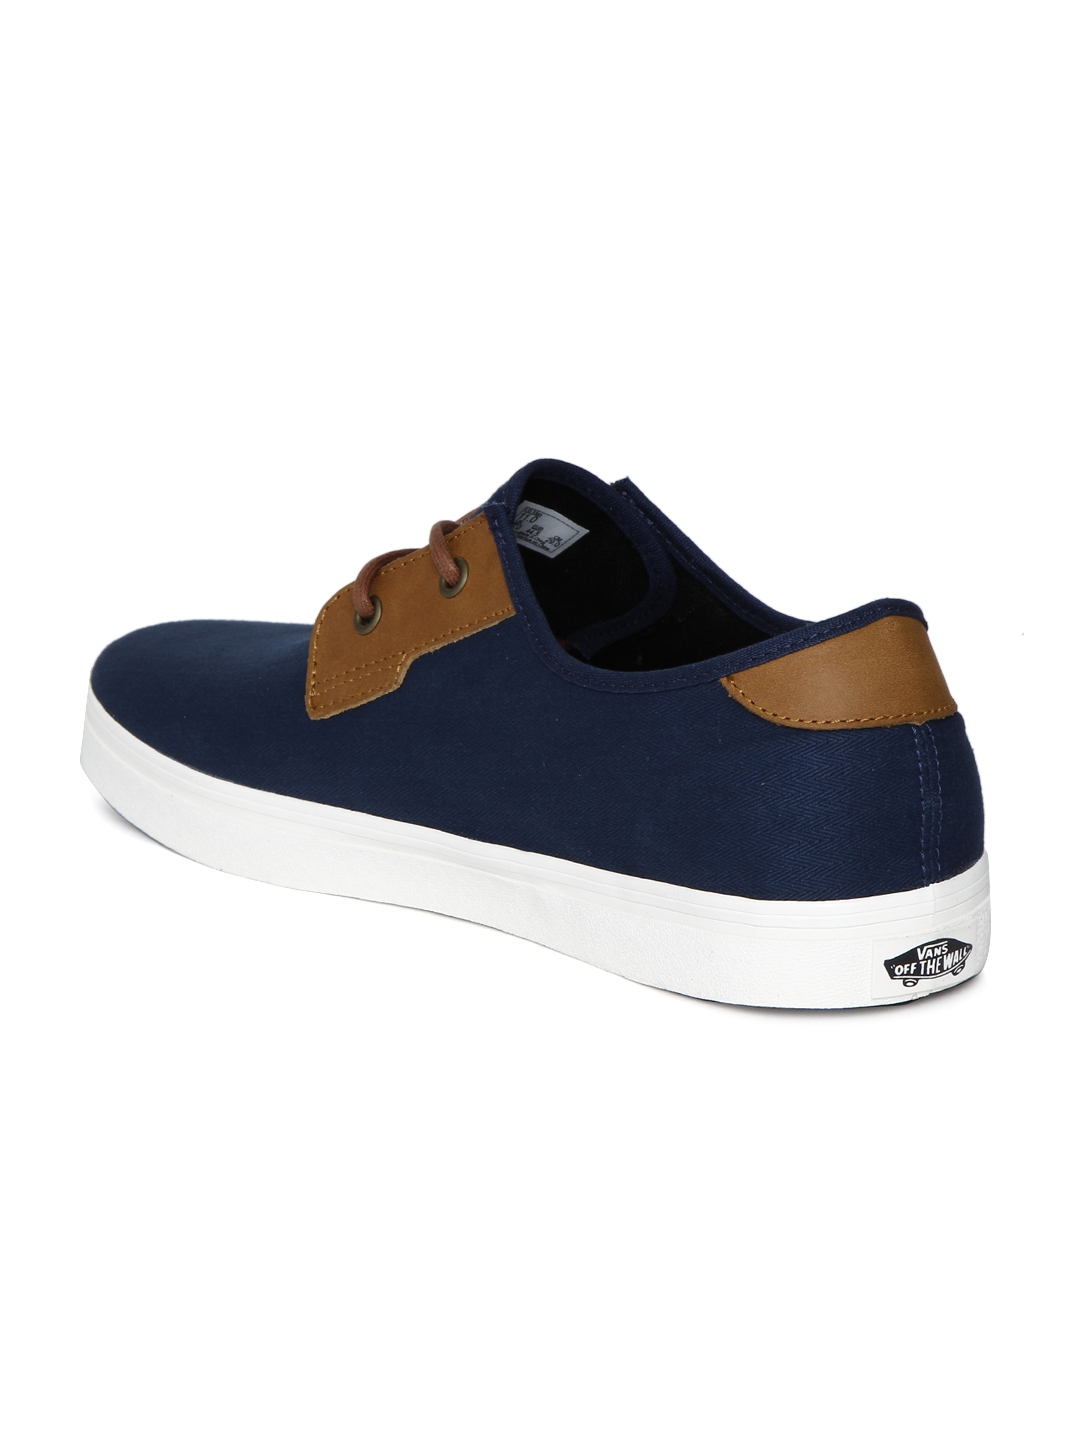 c64596ea6431 Buy Vans Men Navy Blue   Brown Colourblocked MICHOACAN SF Sneakers ...